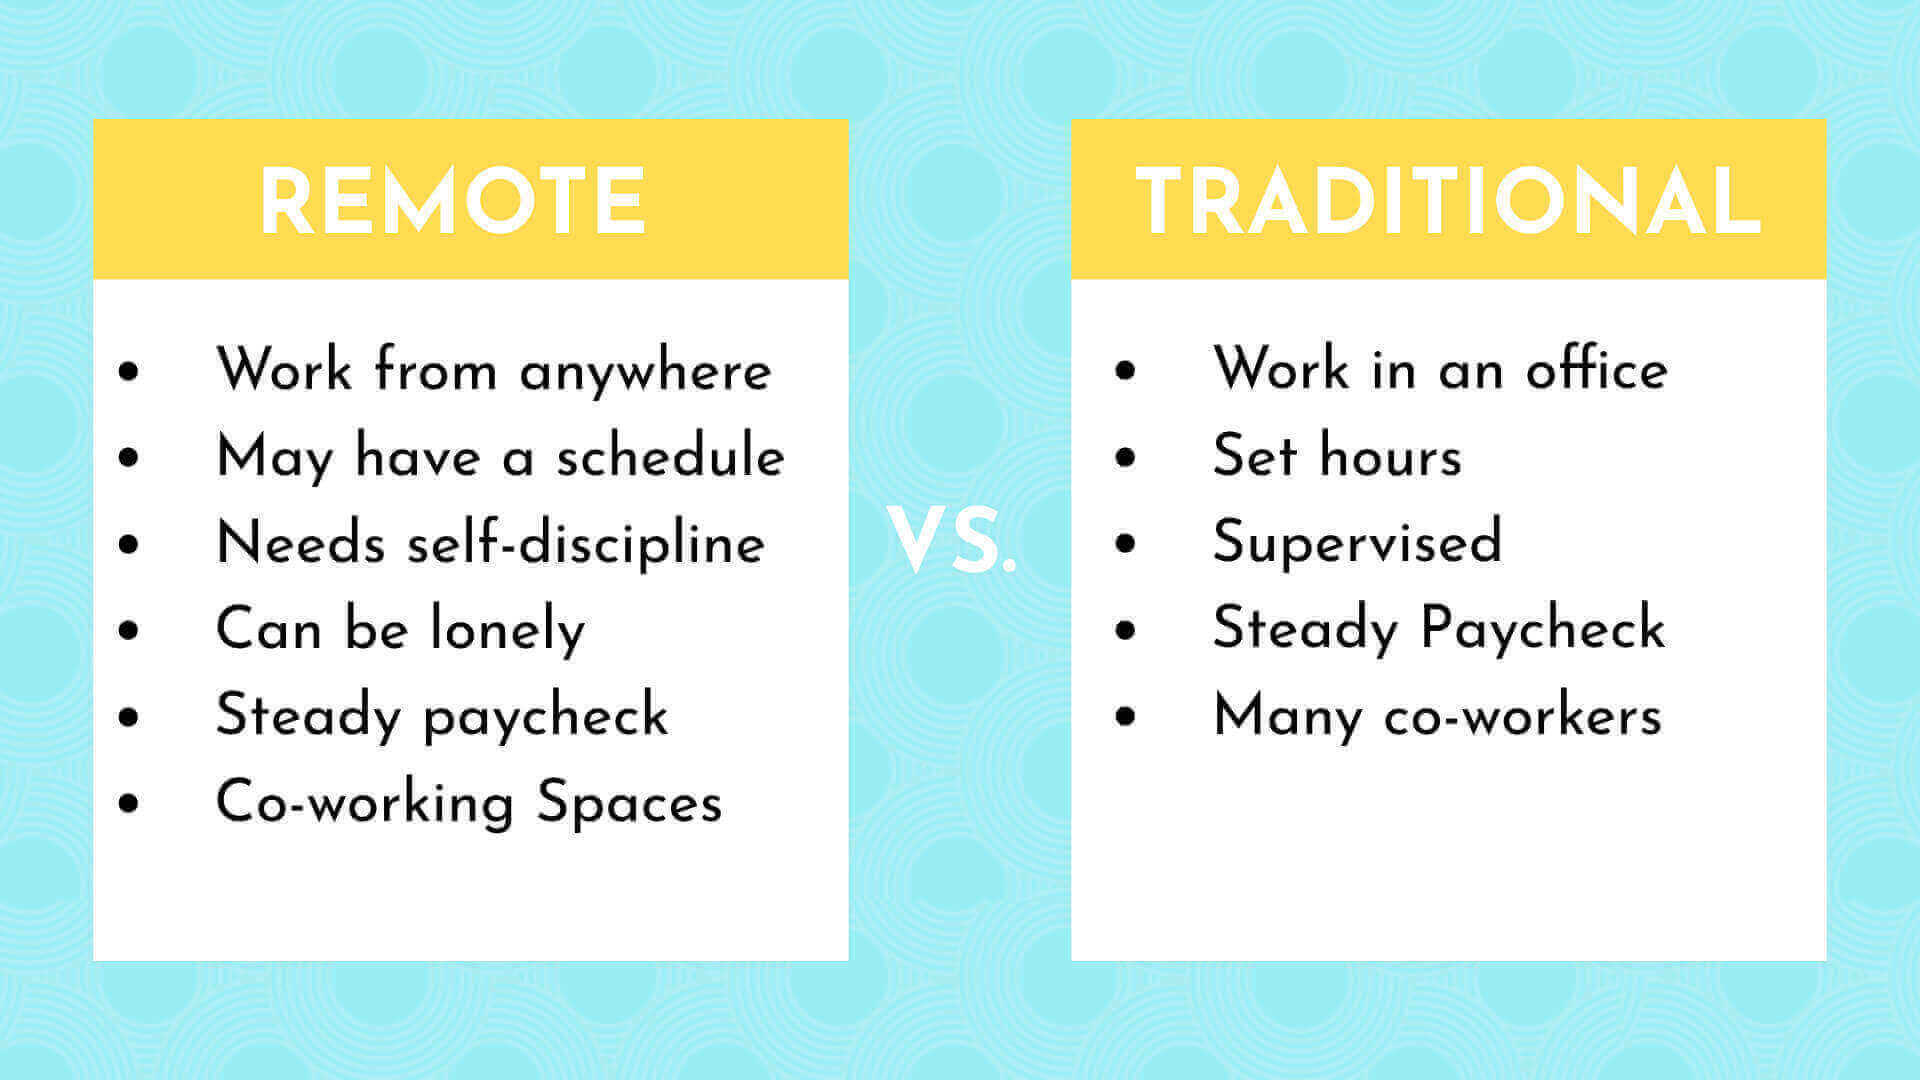 The differences between remote work and traditional works